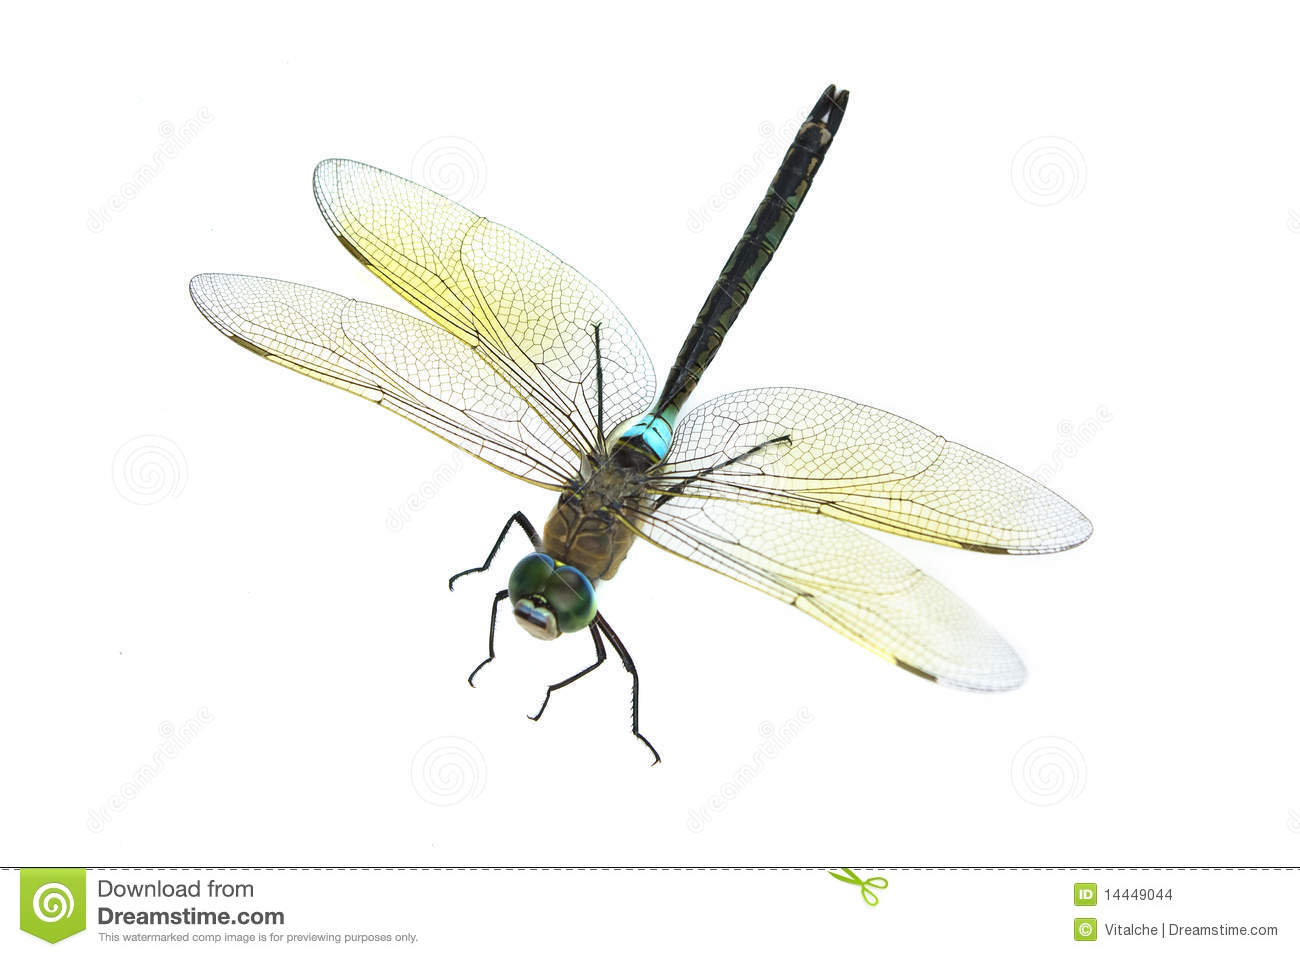 Dragonfly on an isolated white background.